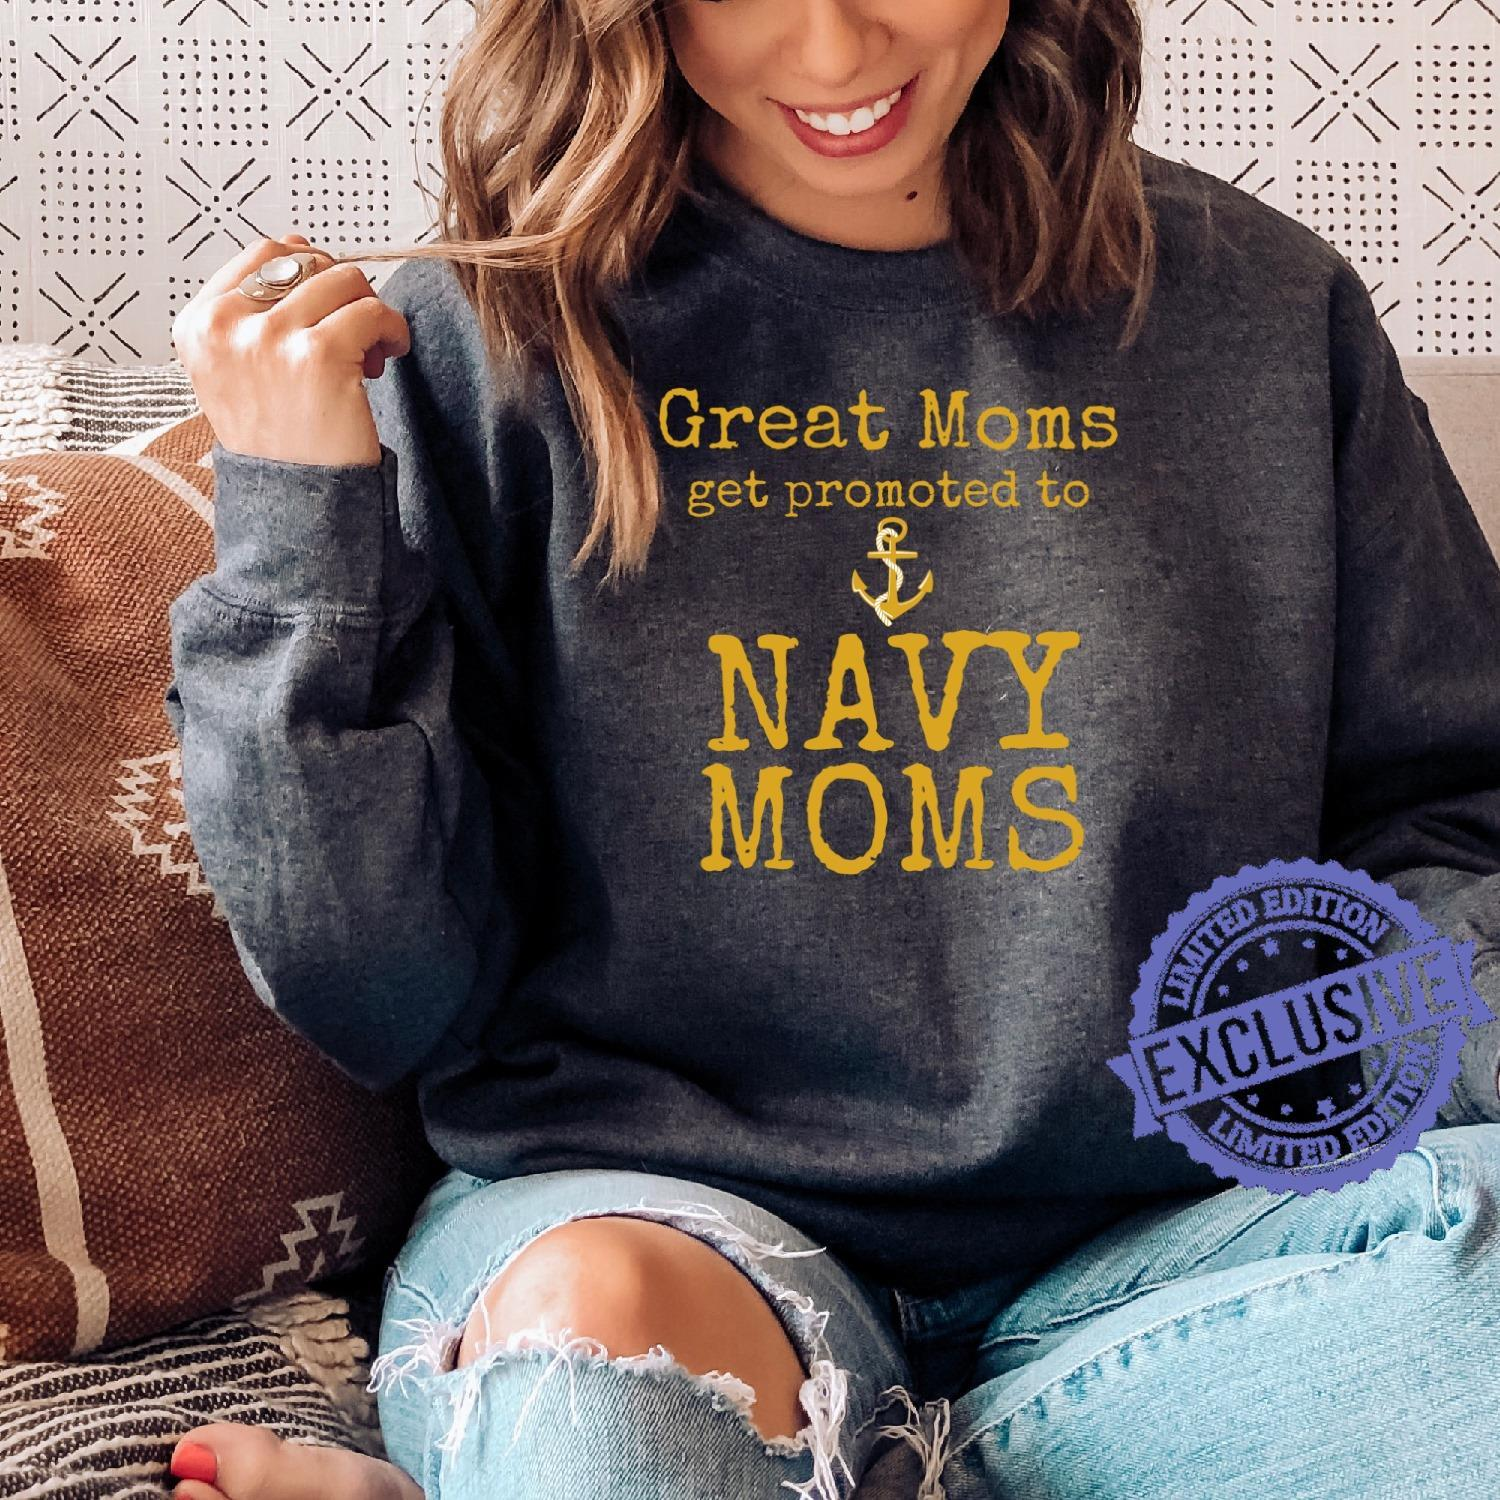 Great moms get promoted to navy moms shirt